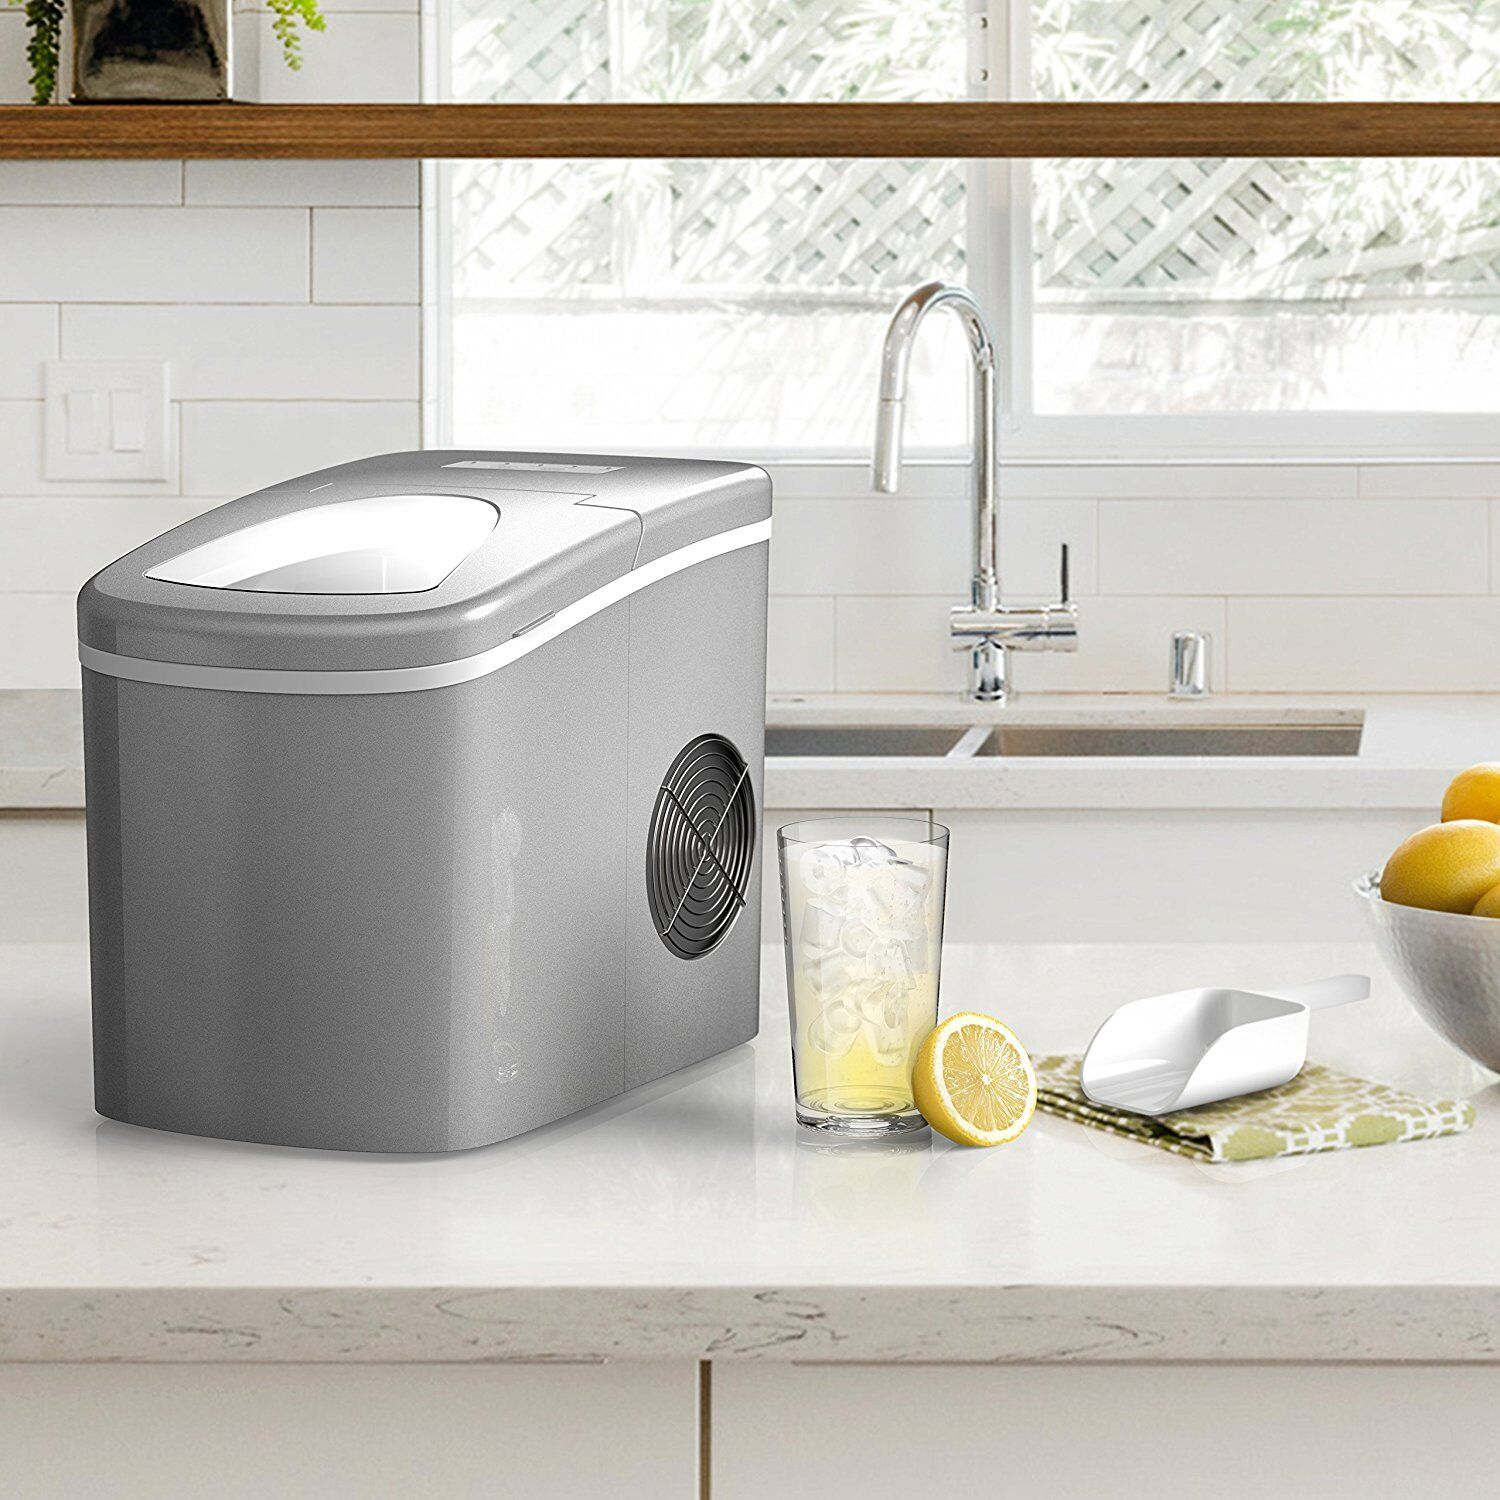 Portable Ice Maker Machine for Counter Top - Makes 26 lbs of